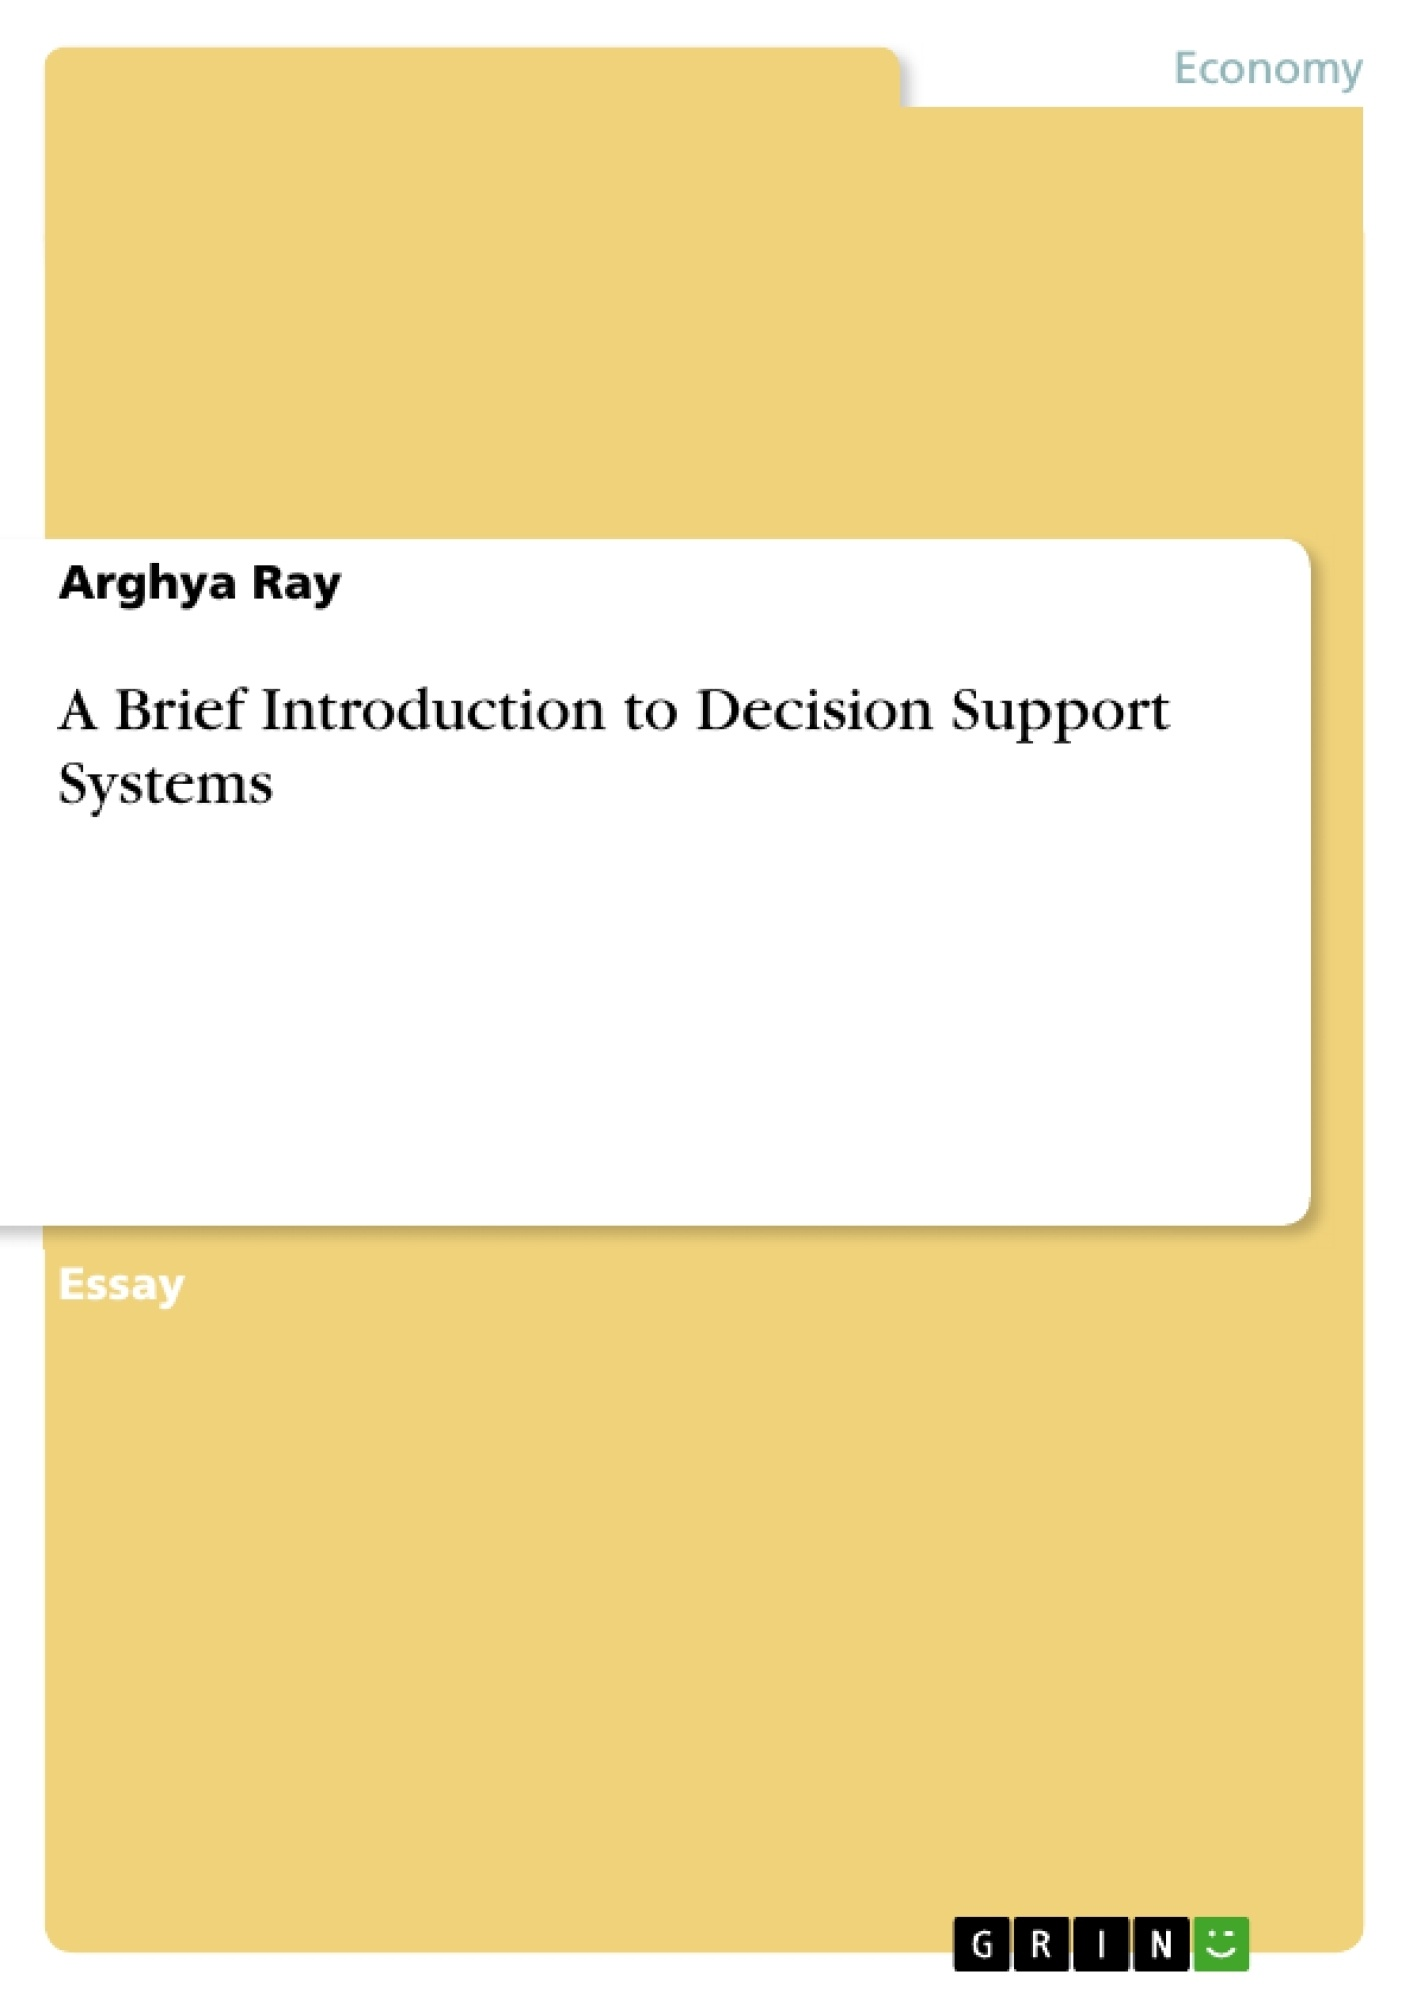 Title: A Brief Introduction to Decision Support Systems